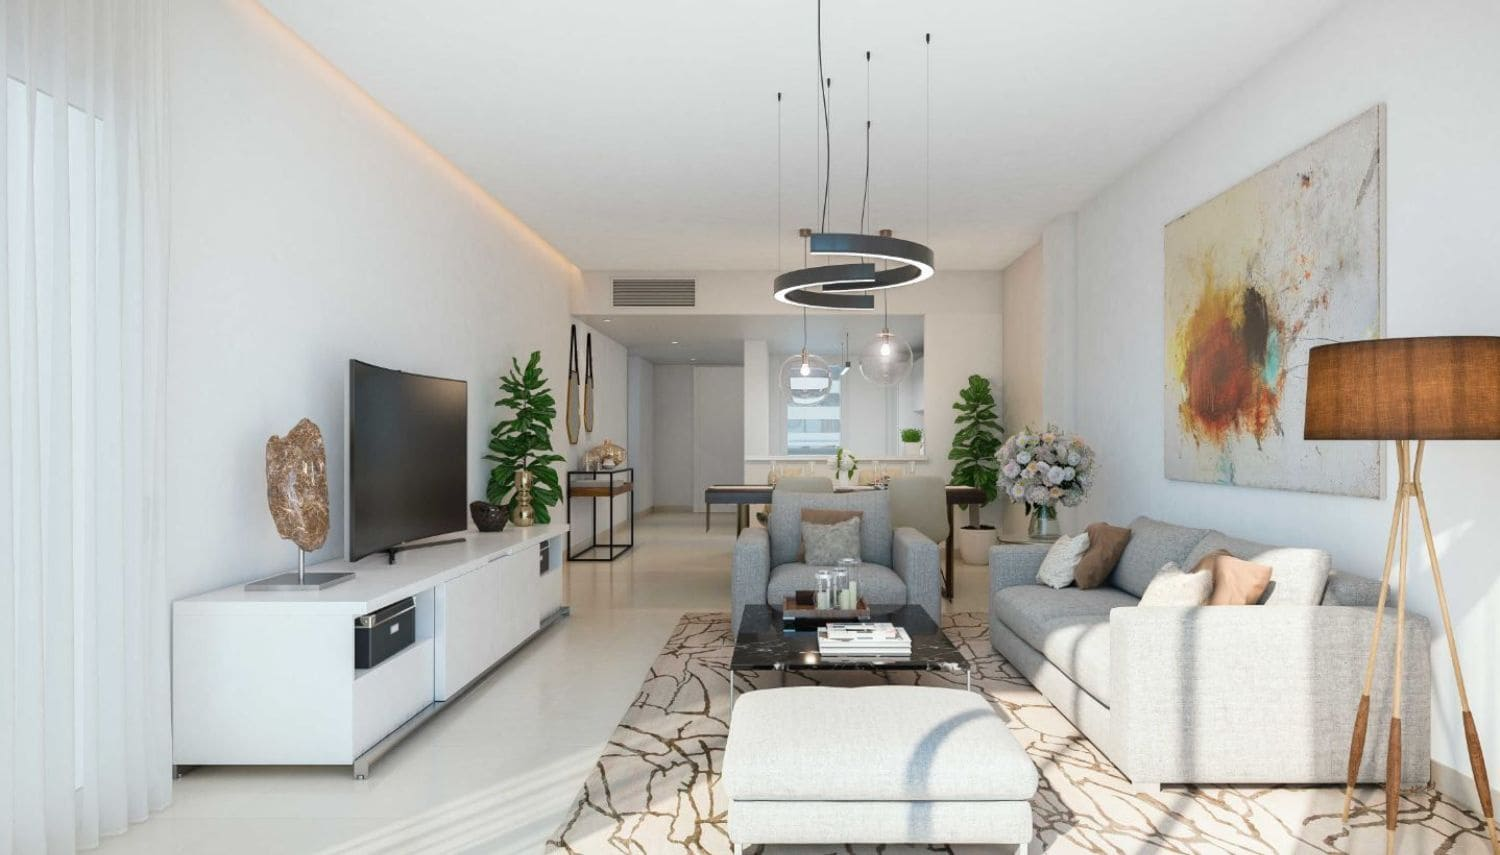 4 bedroom Apartment for sale in Marbella with pool garage - € 381,000 (Ref: 4284924)